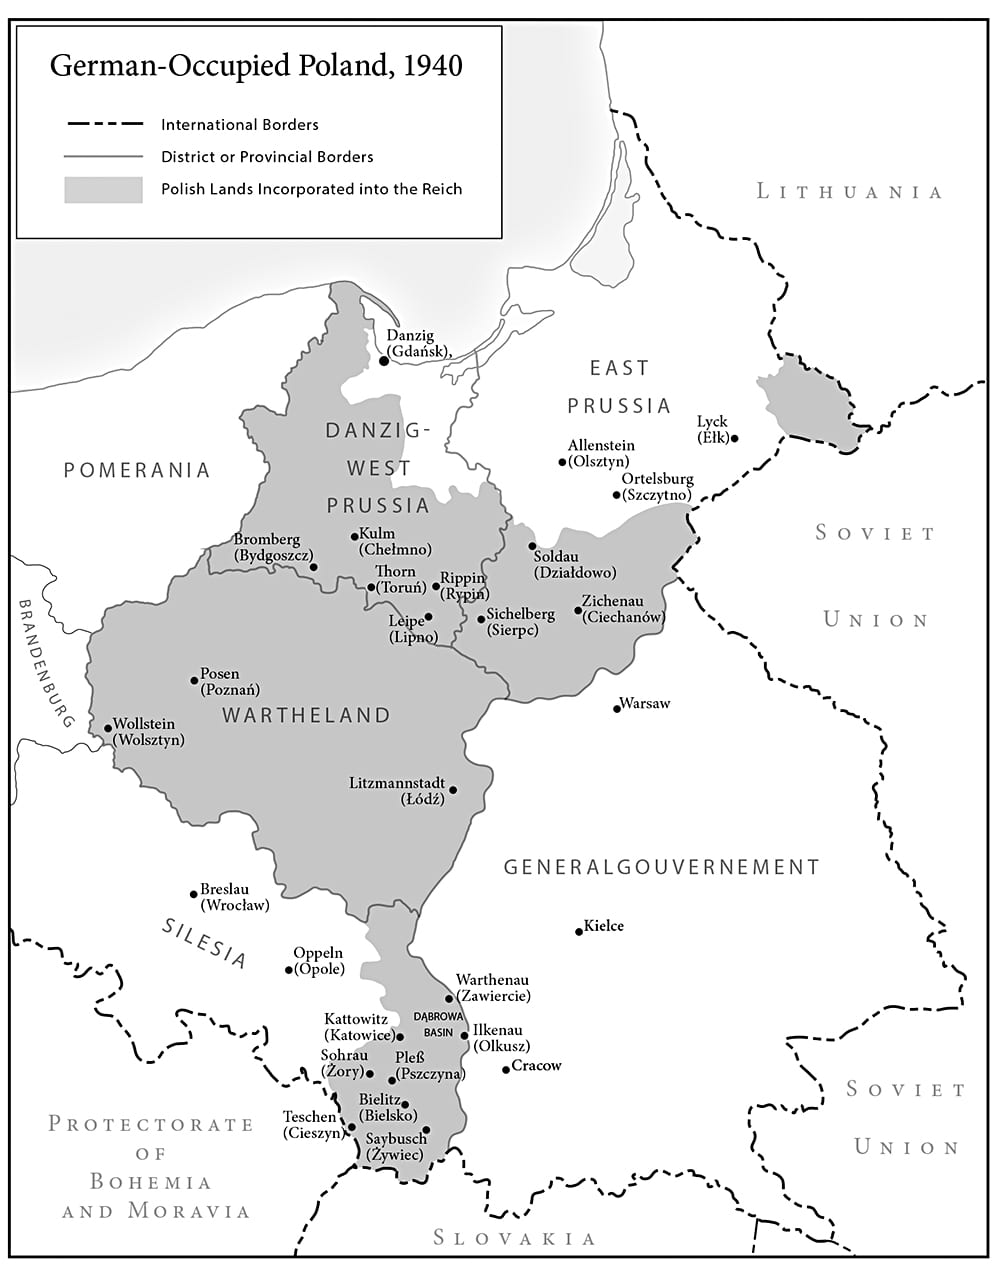 German-occupied Poland 1940, map by Paul Mirocha